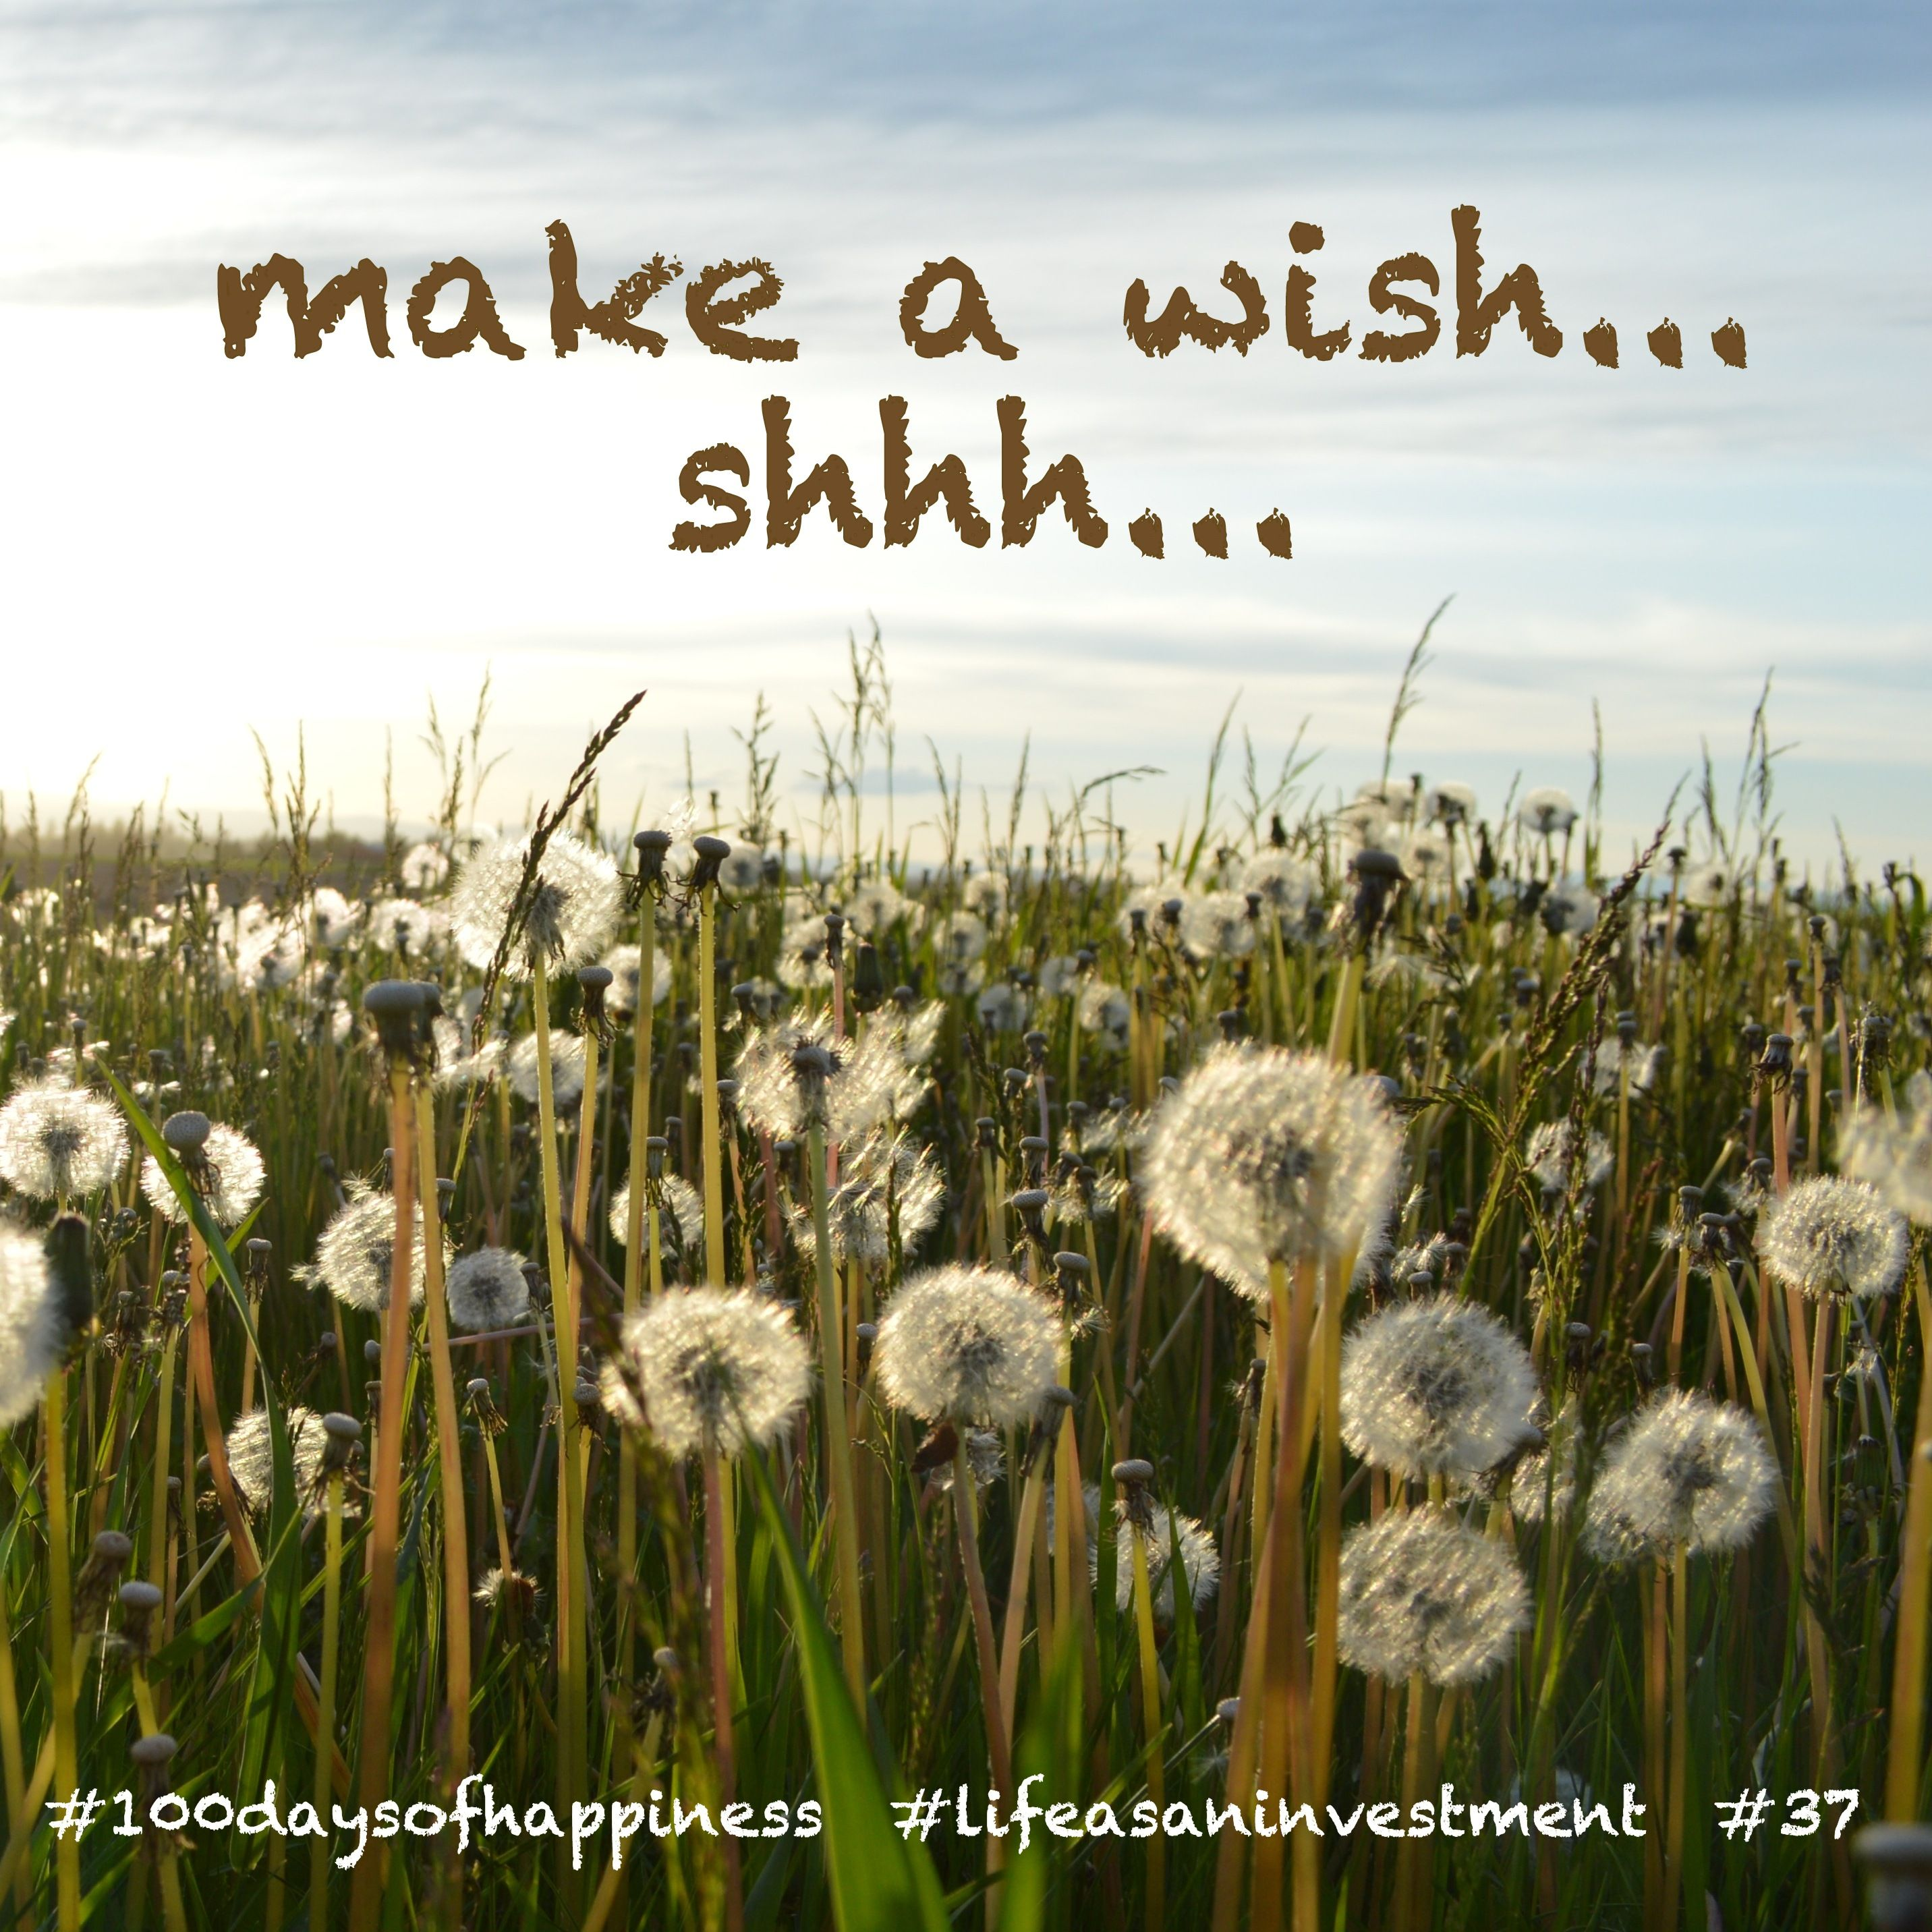 #happiness #100daysofhappiness #lifeasaninvestment